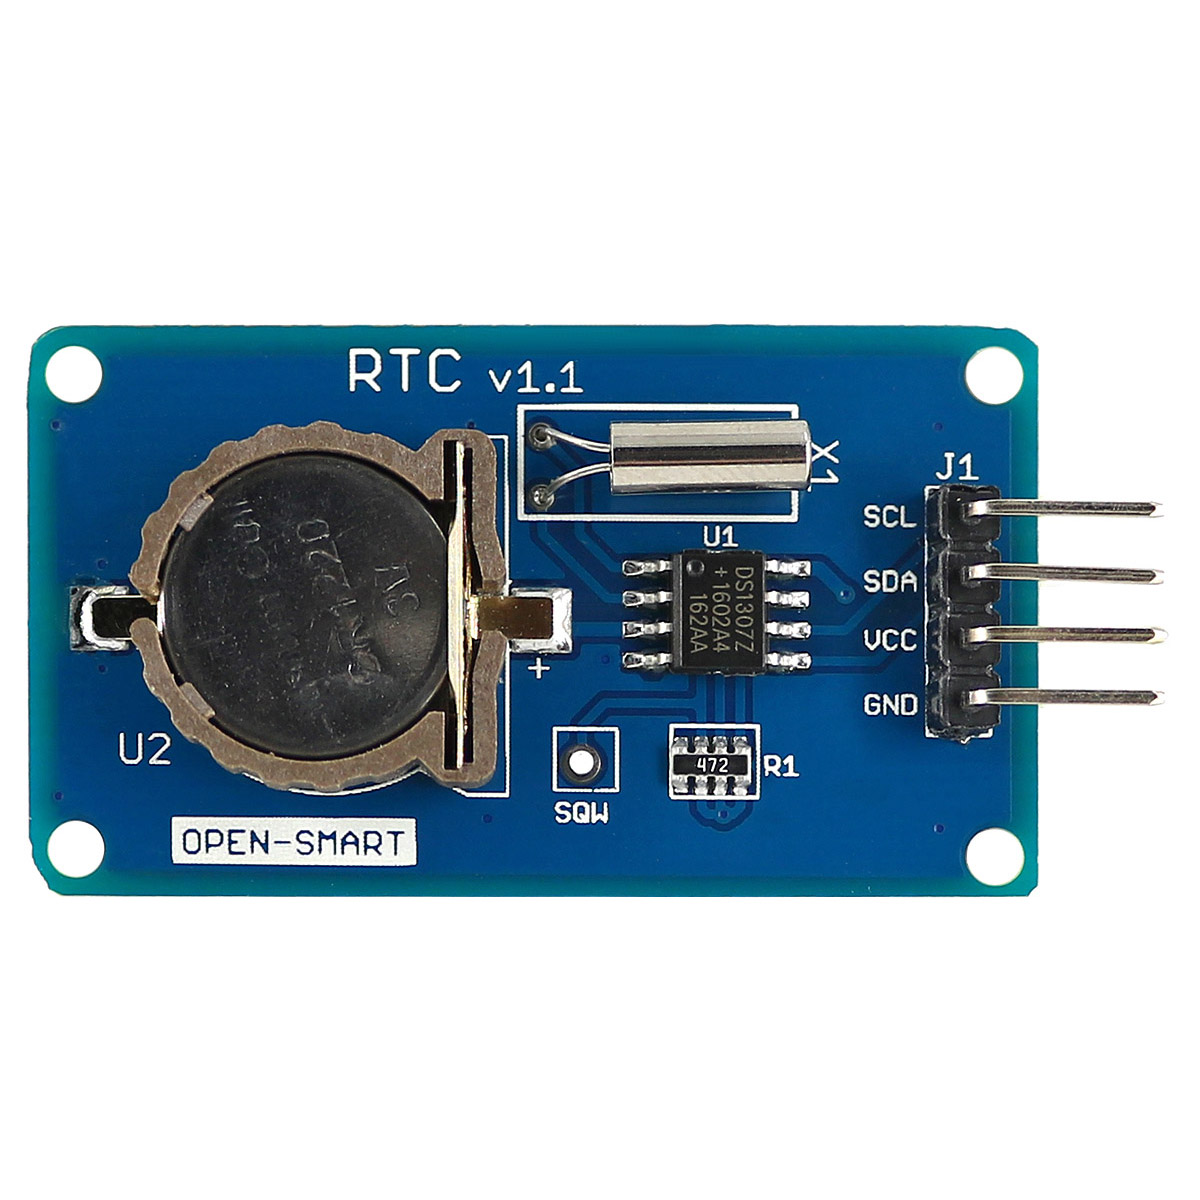 DS1307 Real Time Clock Module, I2C Interface to Do Alarm Clock, RTC ds3231n raspberry pi rtc board real time clock module for arduino red